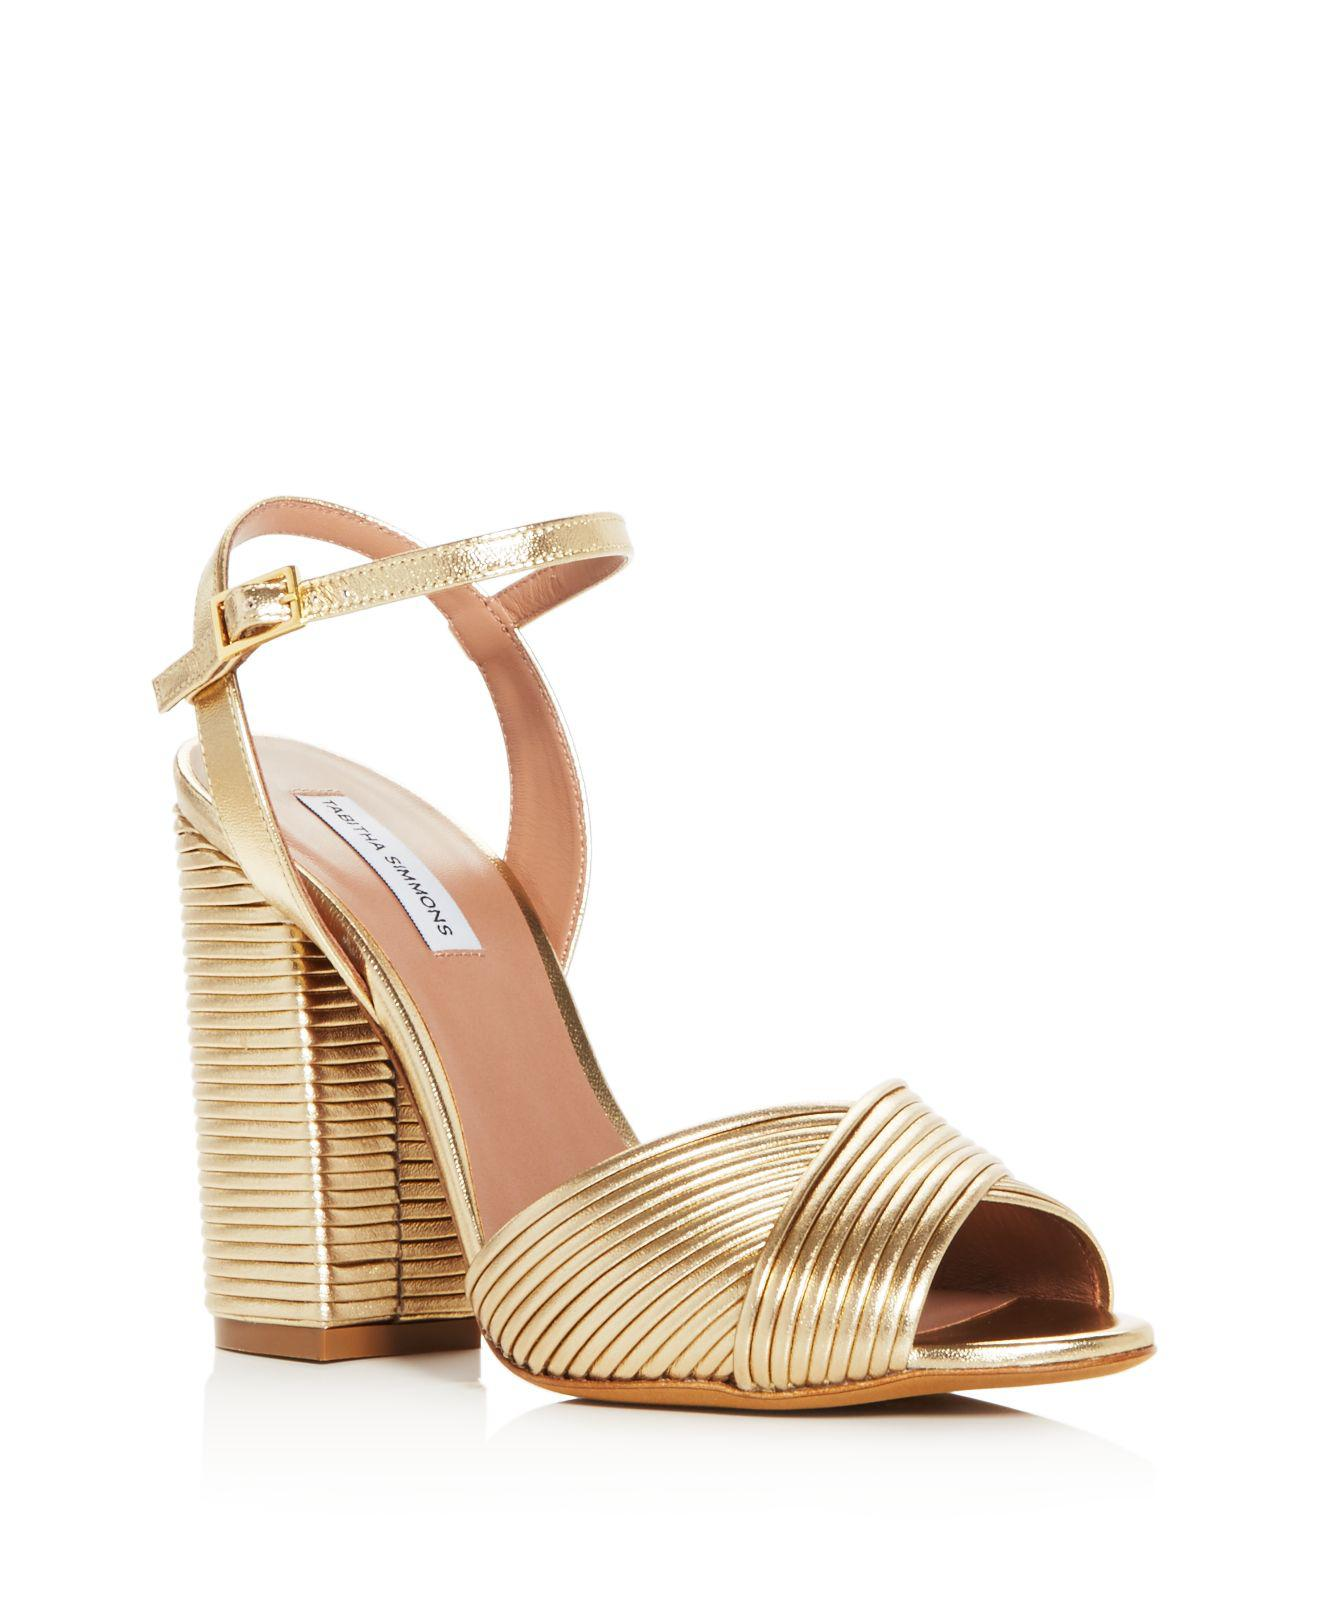 Tabitha Simmons Women's Kali Pleated Leather Block Heel Sandals 7mZDQW